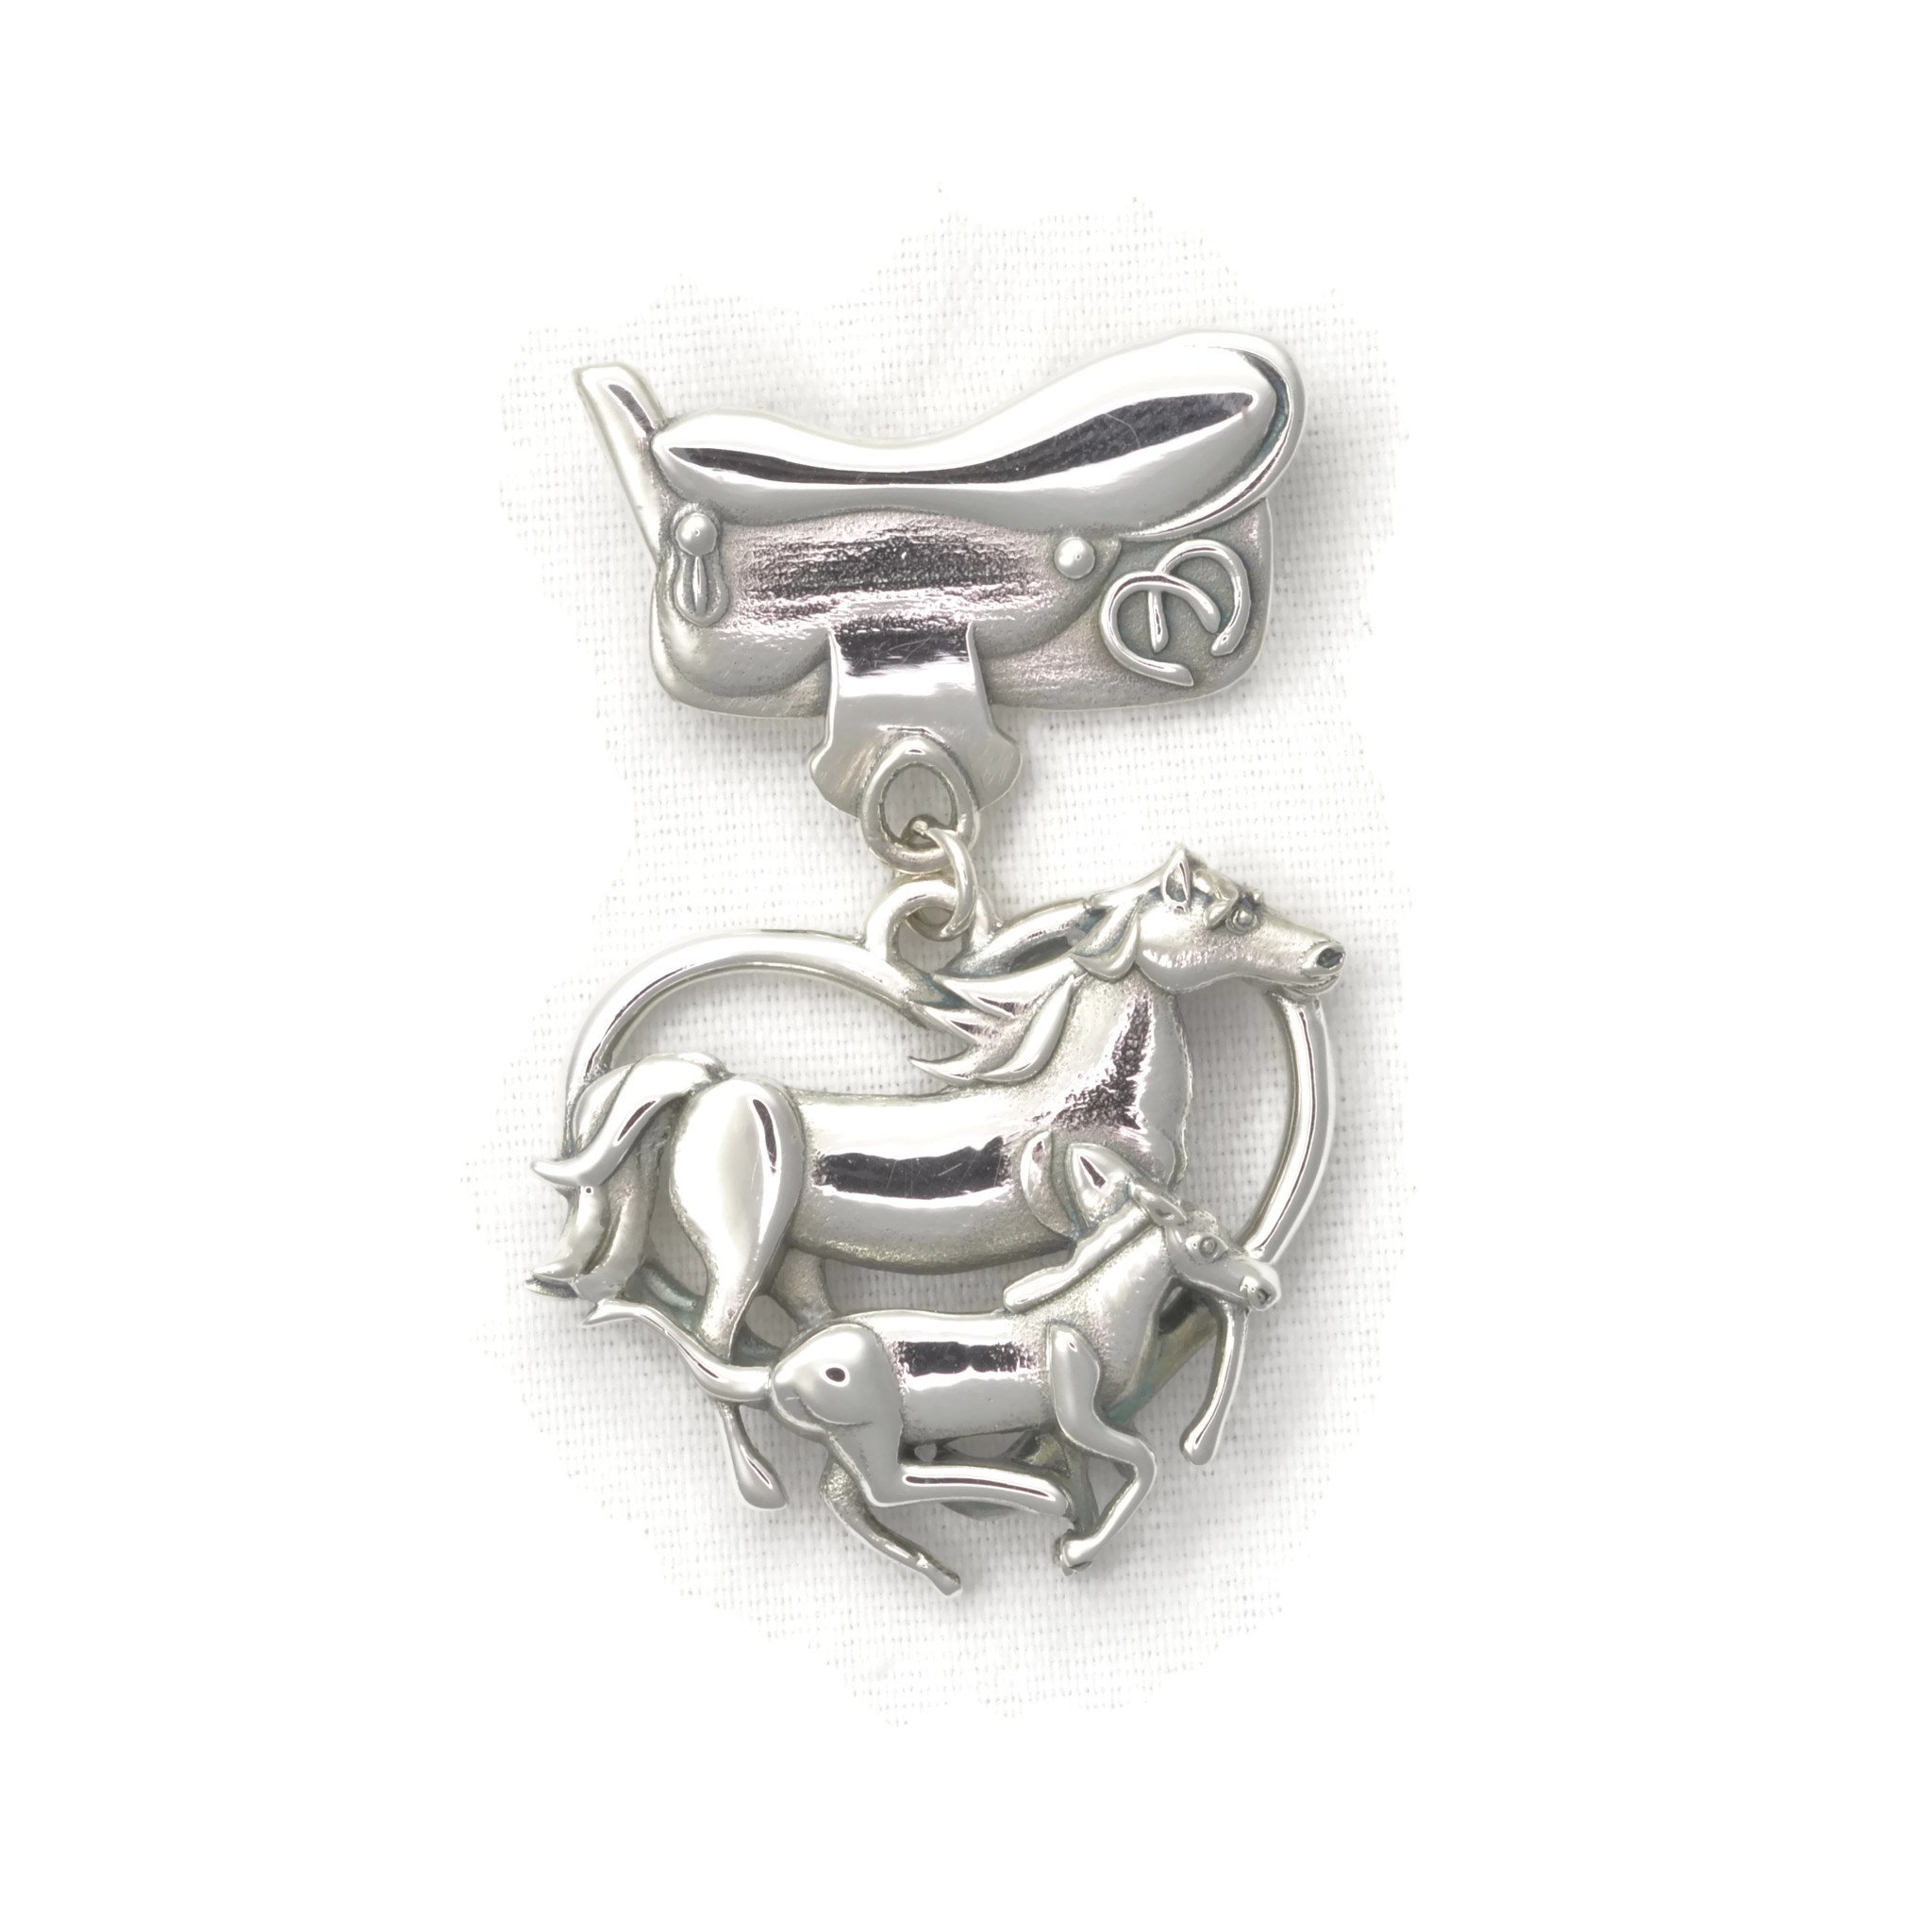 Sterling Silver Horse Pin - Horse Brooch by Donna Pizarro from her Animal Whimsey Collection of Fine Horse Jewelry